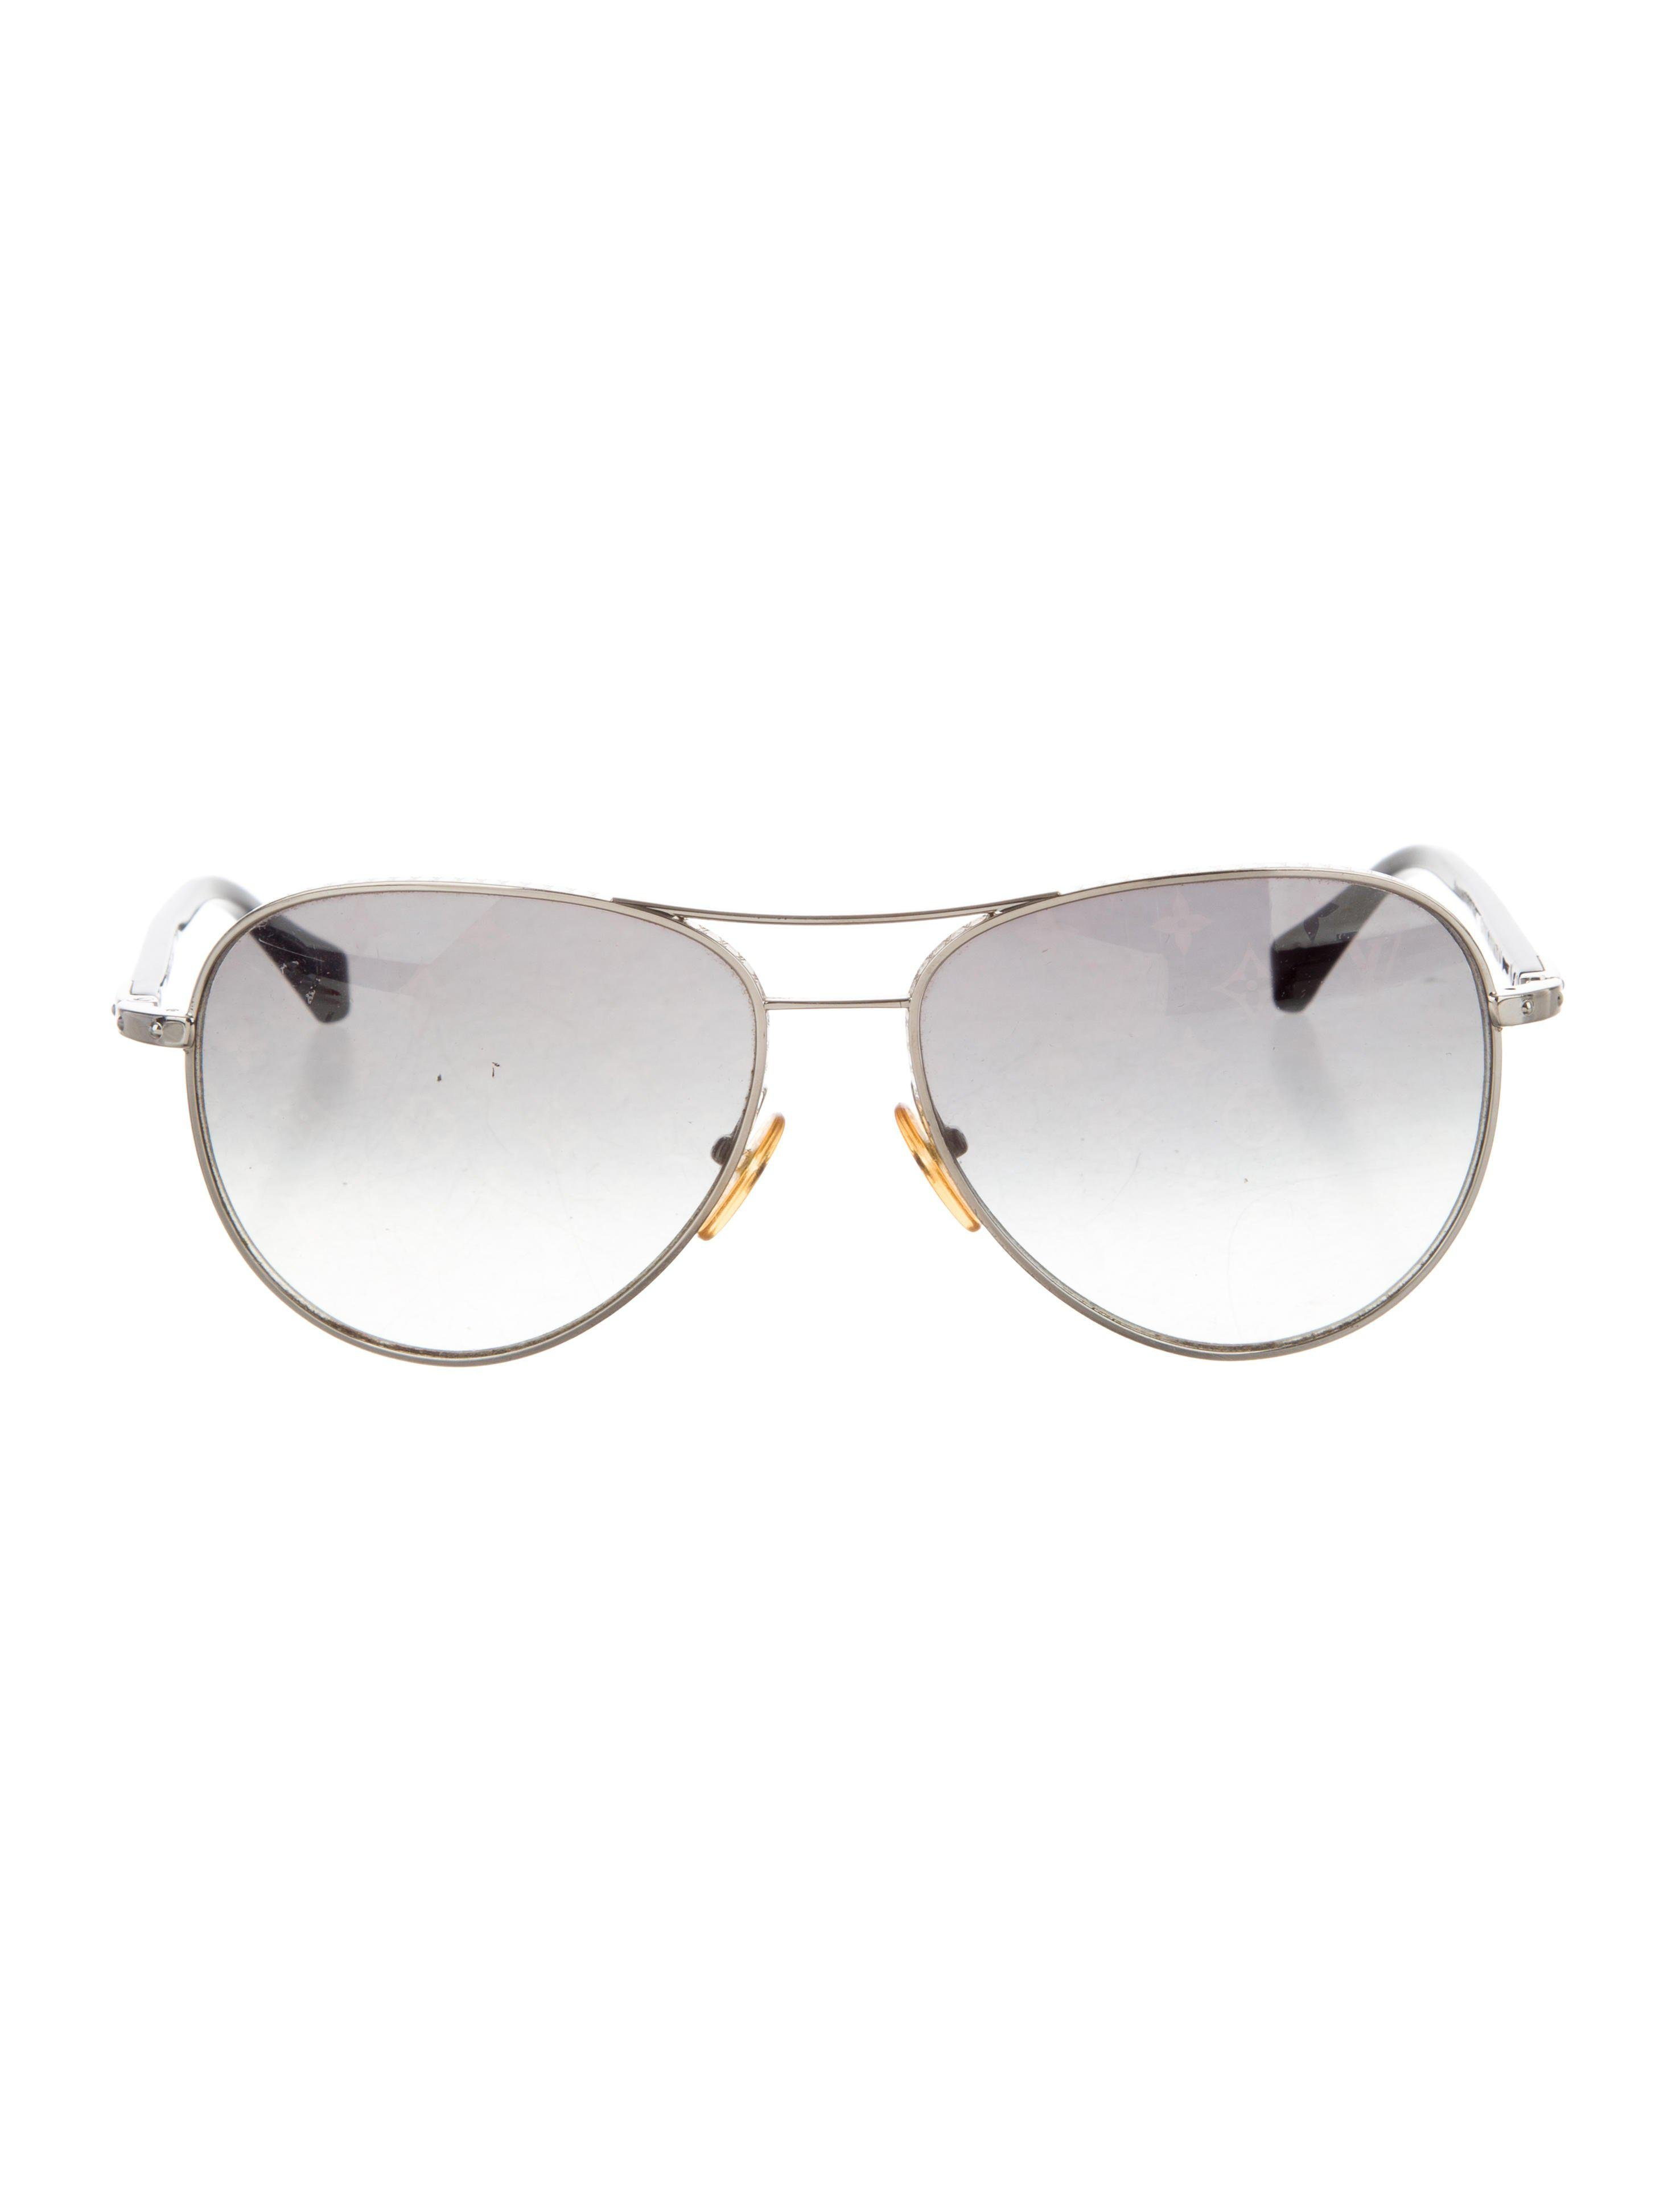 ba9745cfbb5 Lyst - Louis Vuitton Conspiration Pilote Sunglasses Silver in Metallic